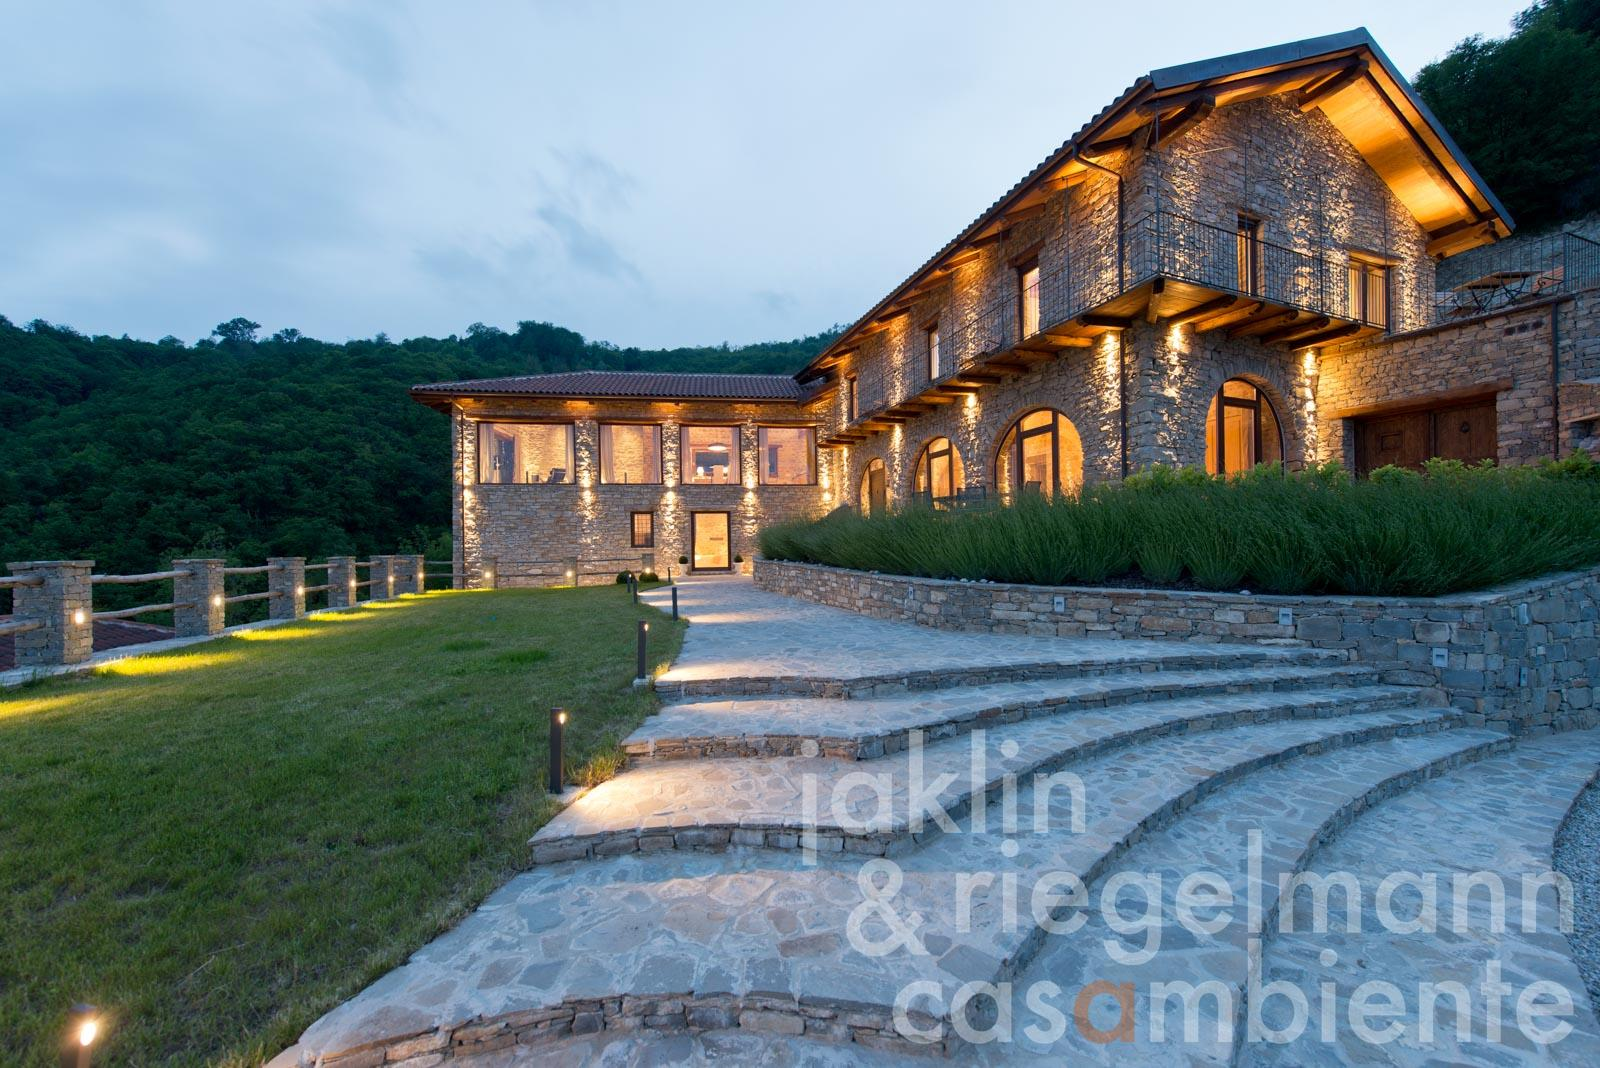 The dreamlike country house for sale with sauna and pool in impressive panoramic setting in Piedmont